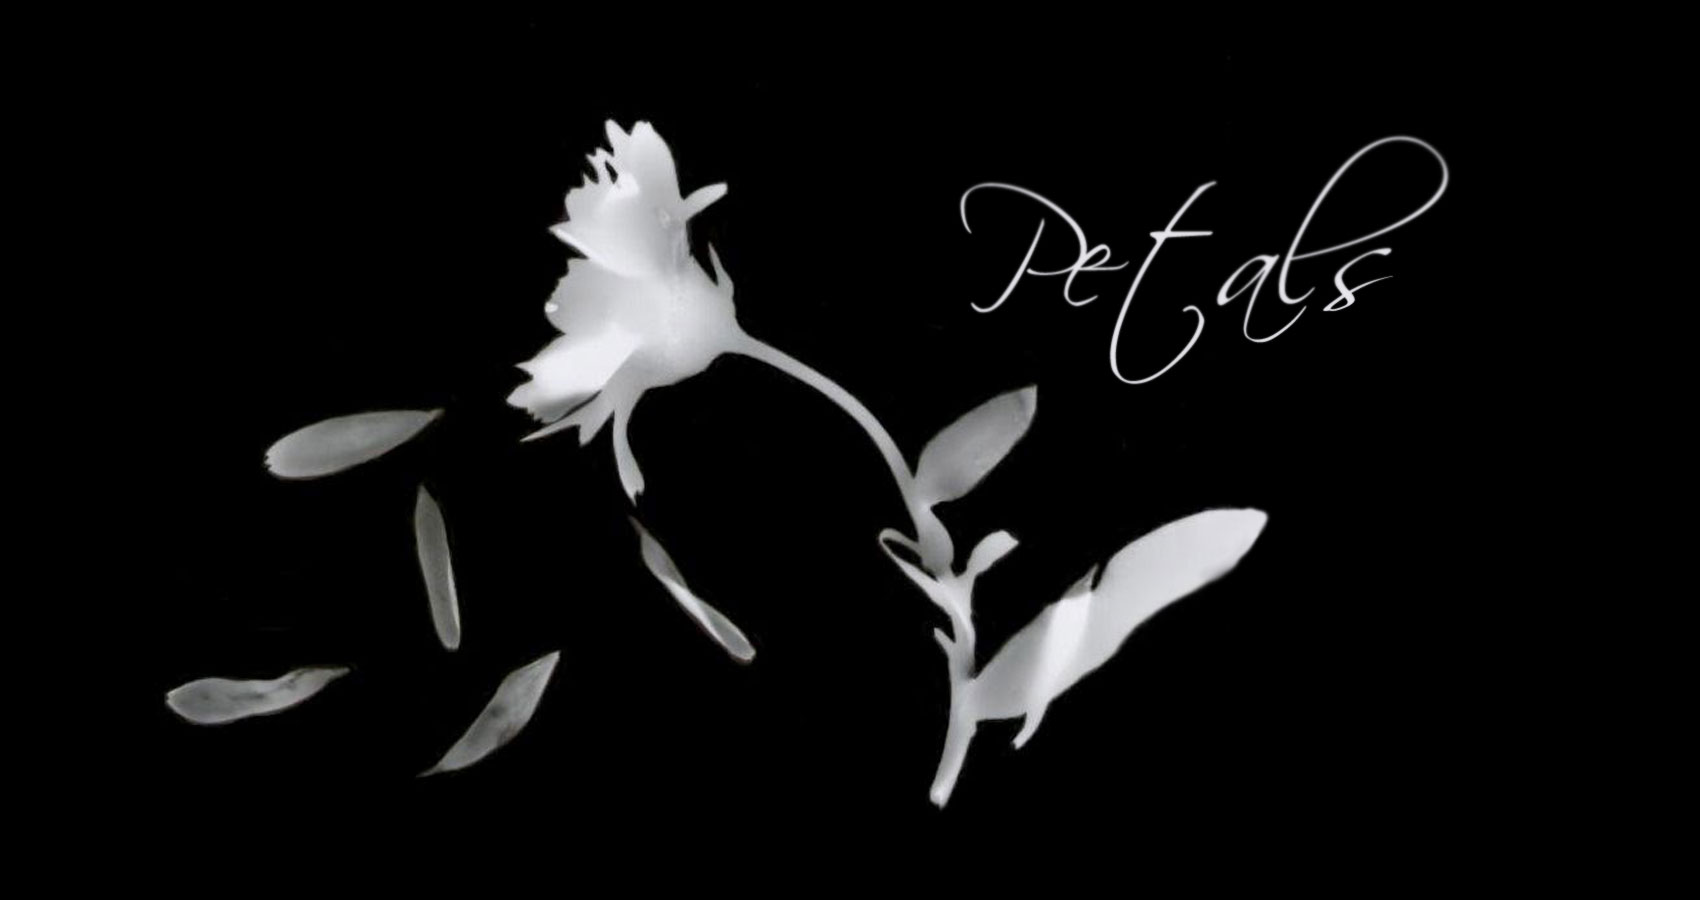 Petals, written by Steven Anton Butler at Spillwords.com